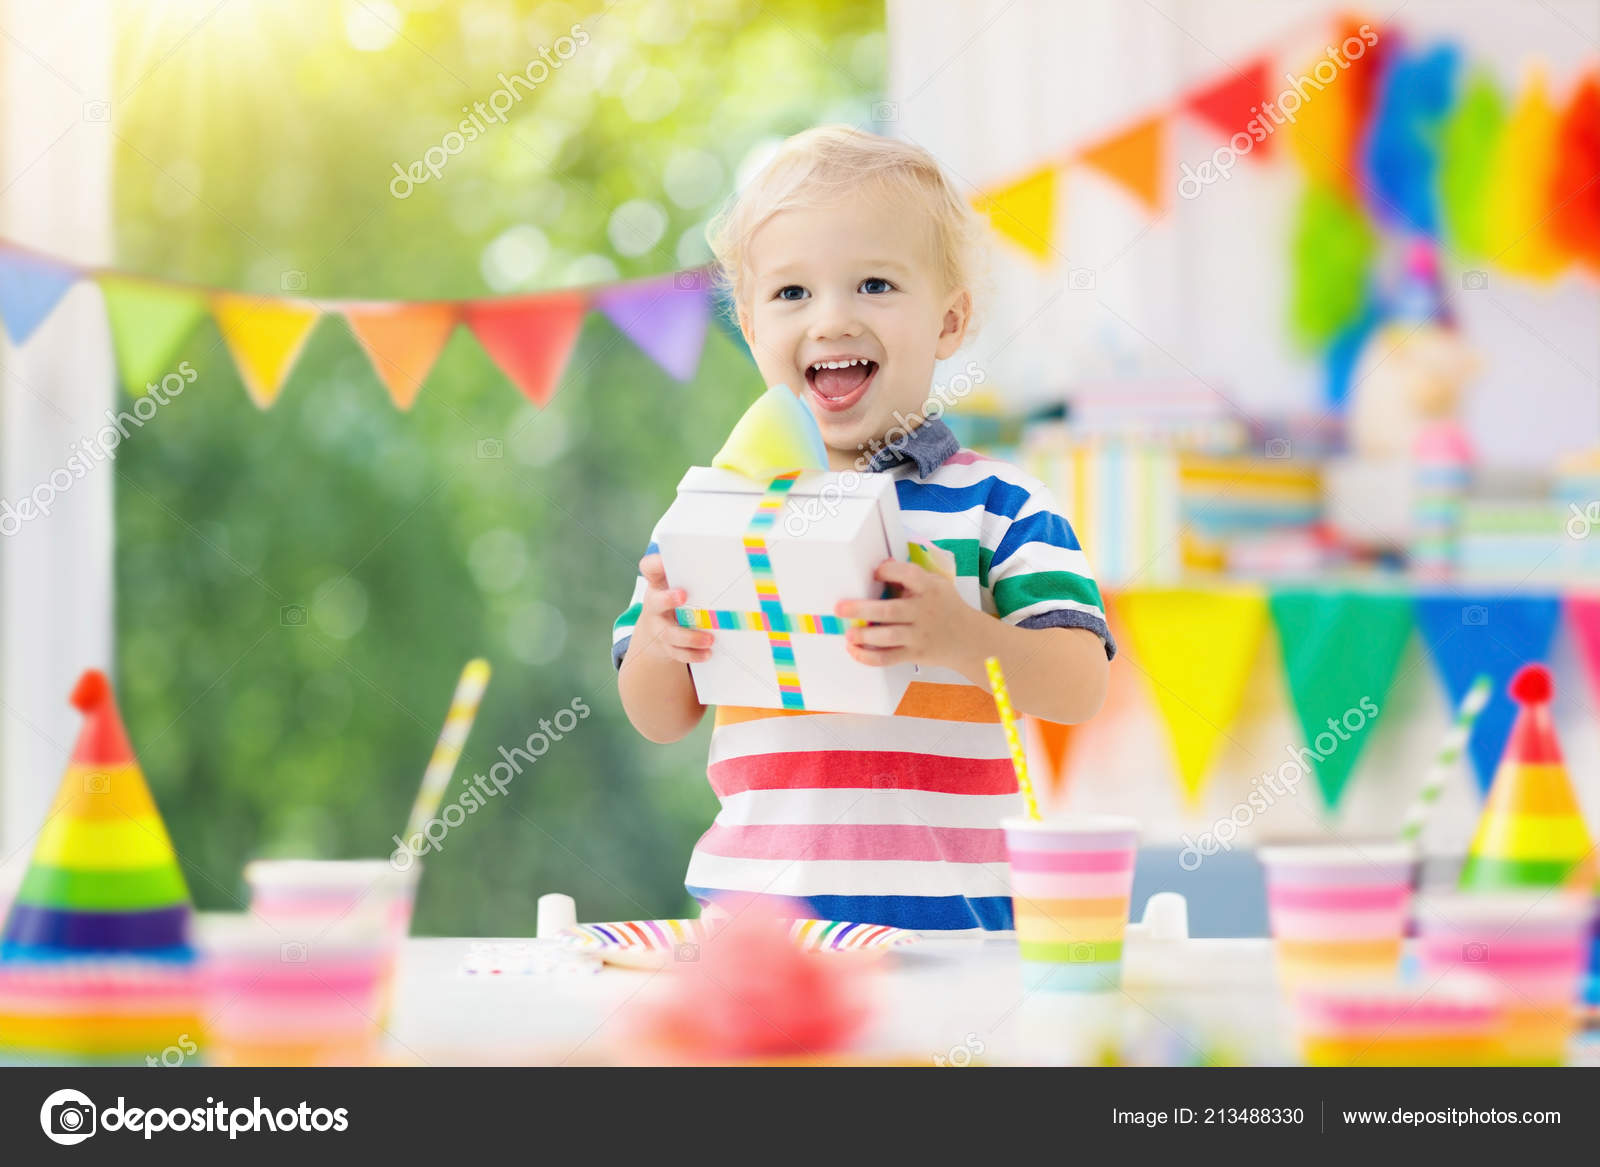 Little Kid Birthday Party Kids Birthday Party Child Blowing Out Candles Colorful Cake